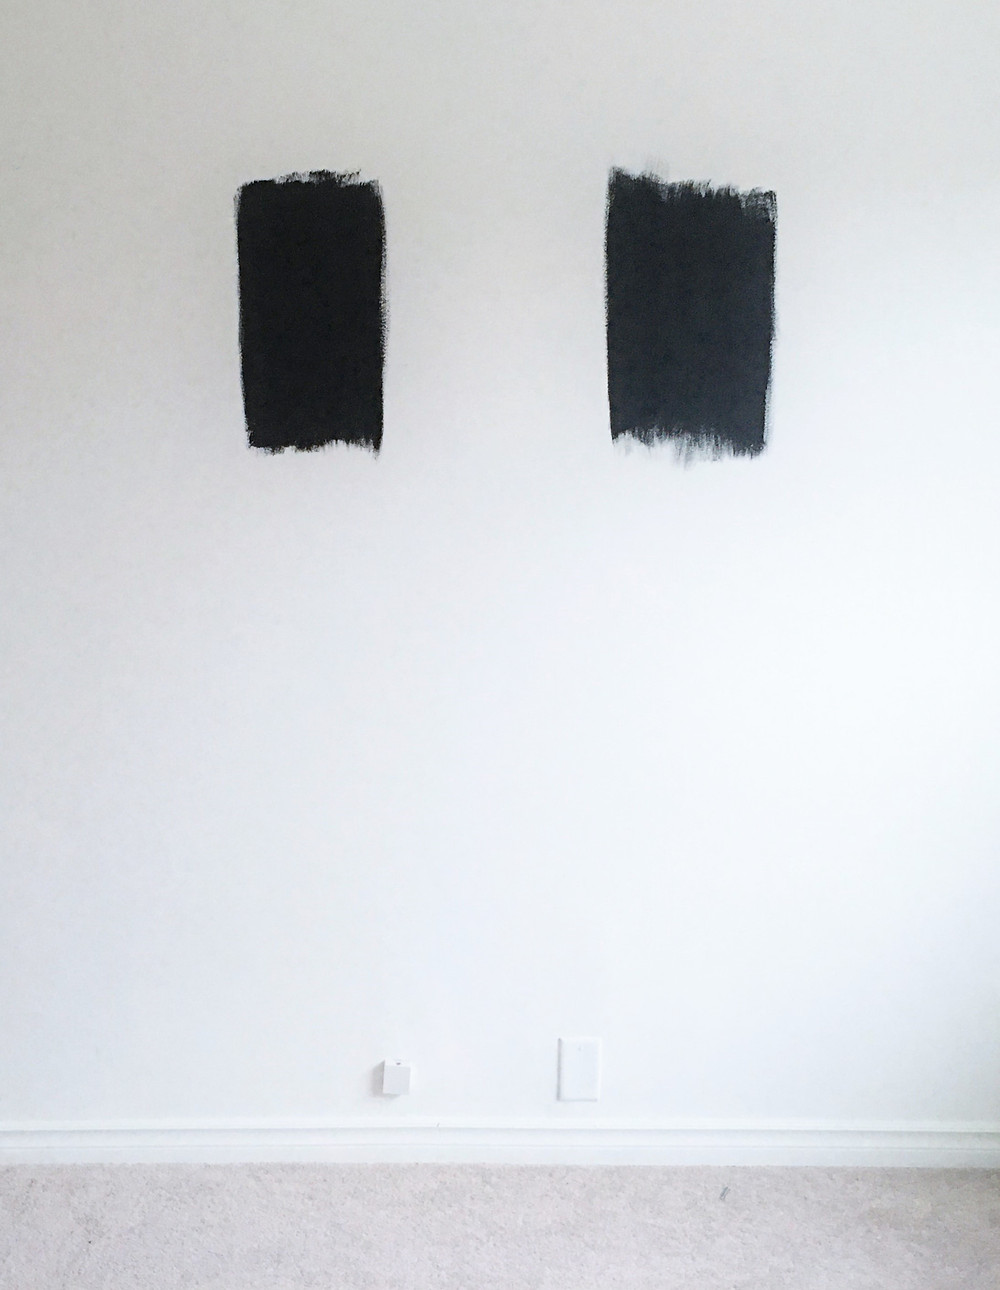 Two Black paint swatches on a bedroom wall